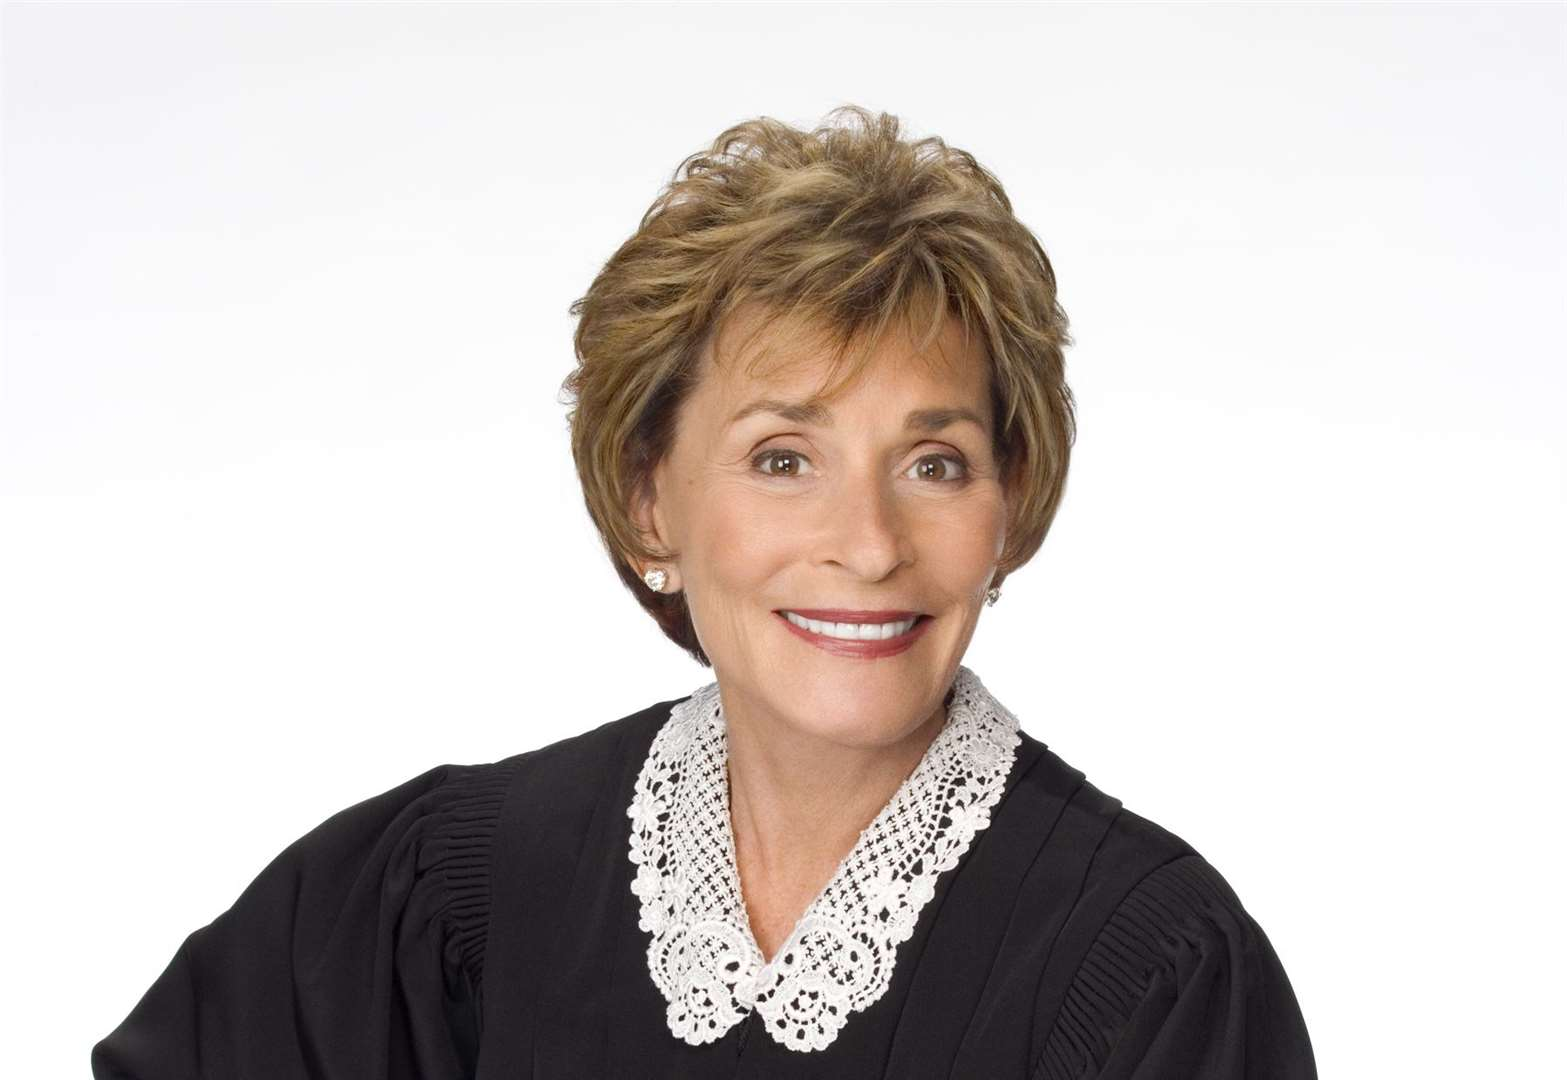 Judge Judy delivers her verdict at the Cambridge Union